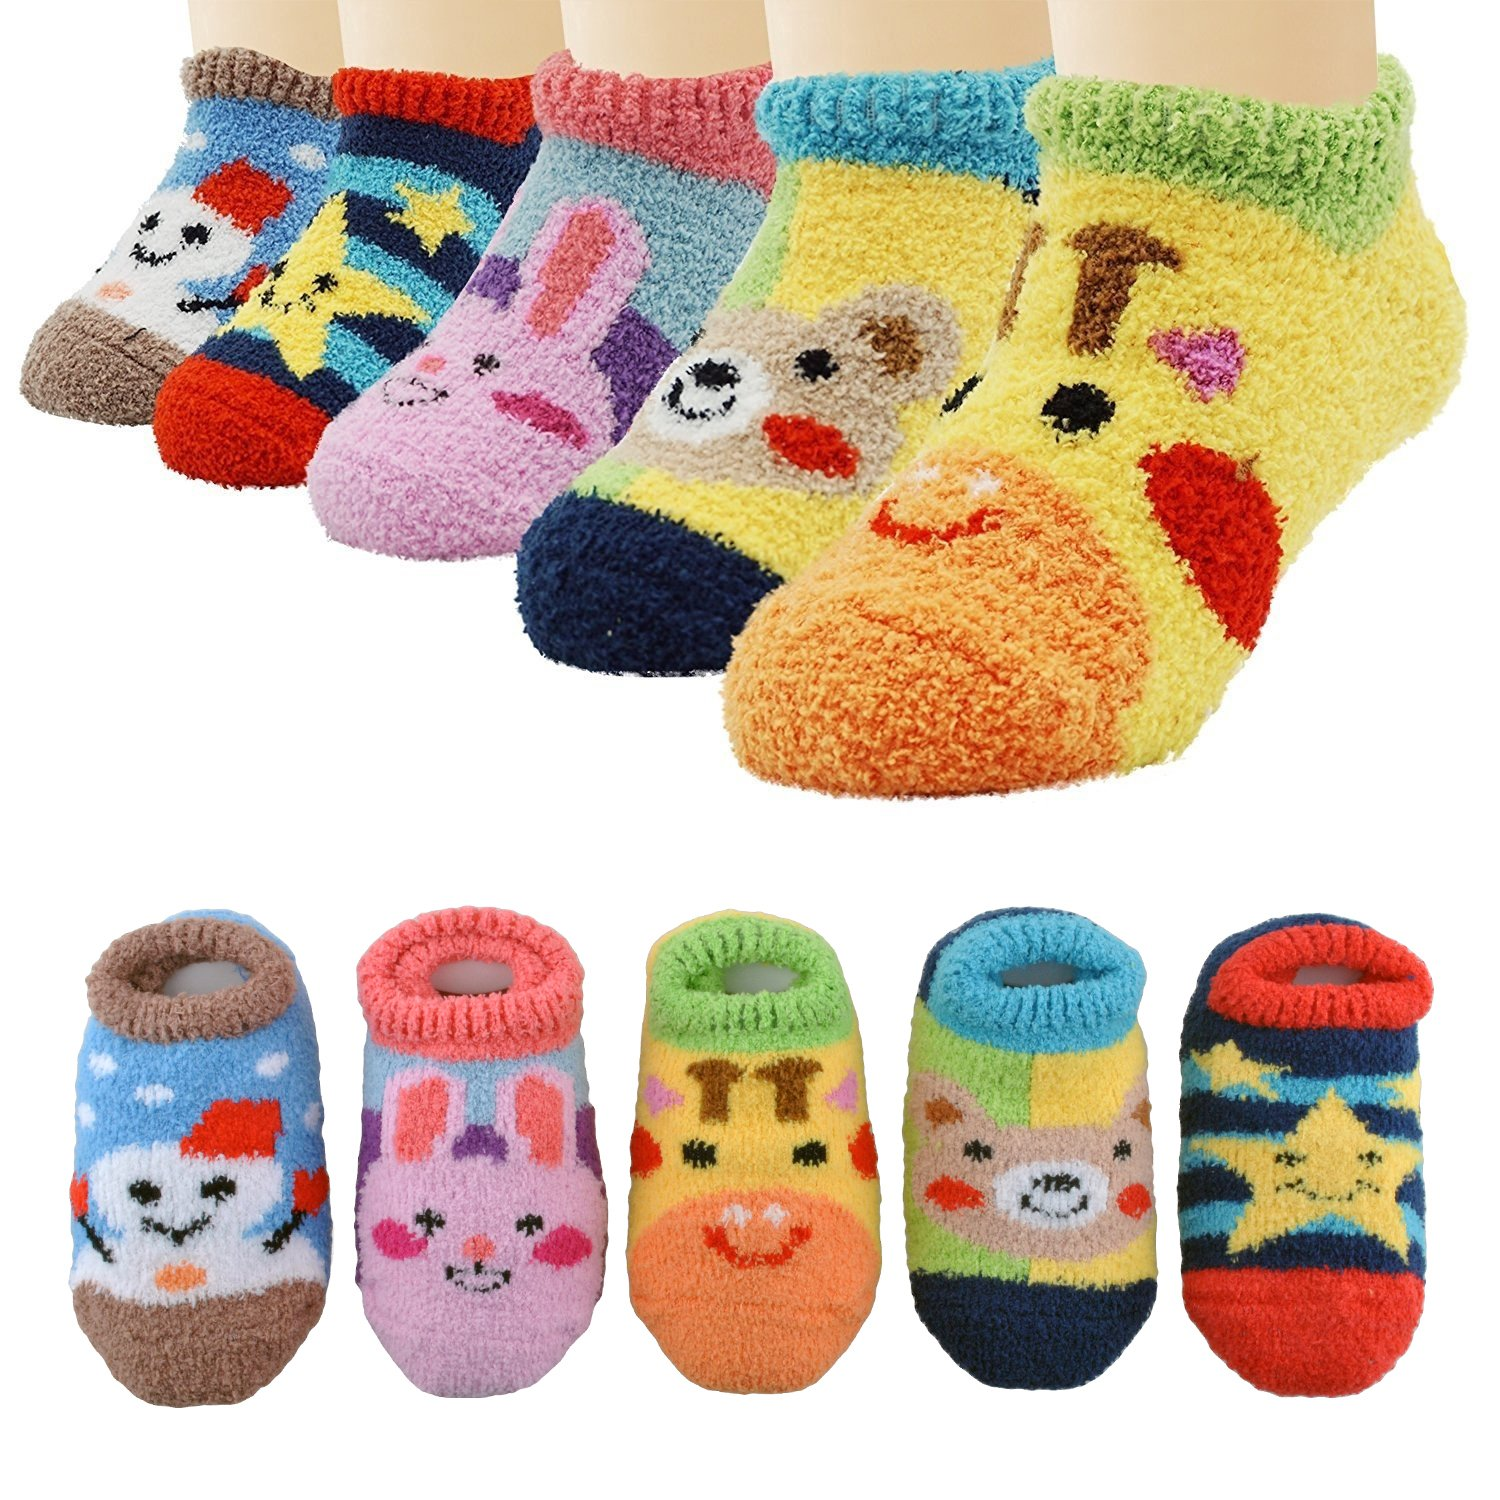 EINSKEY Baby Socks with Grips, 5 Pairs Lovely Non-Slip Fleece Lining Ankle Socks for 6-18 Months Toddlers